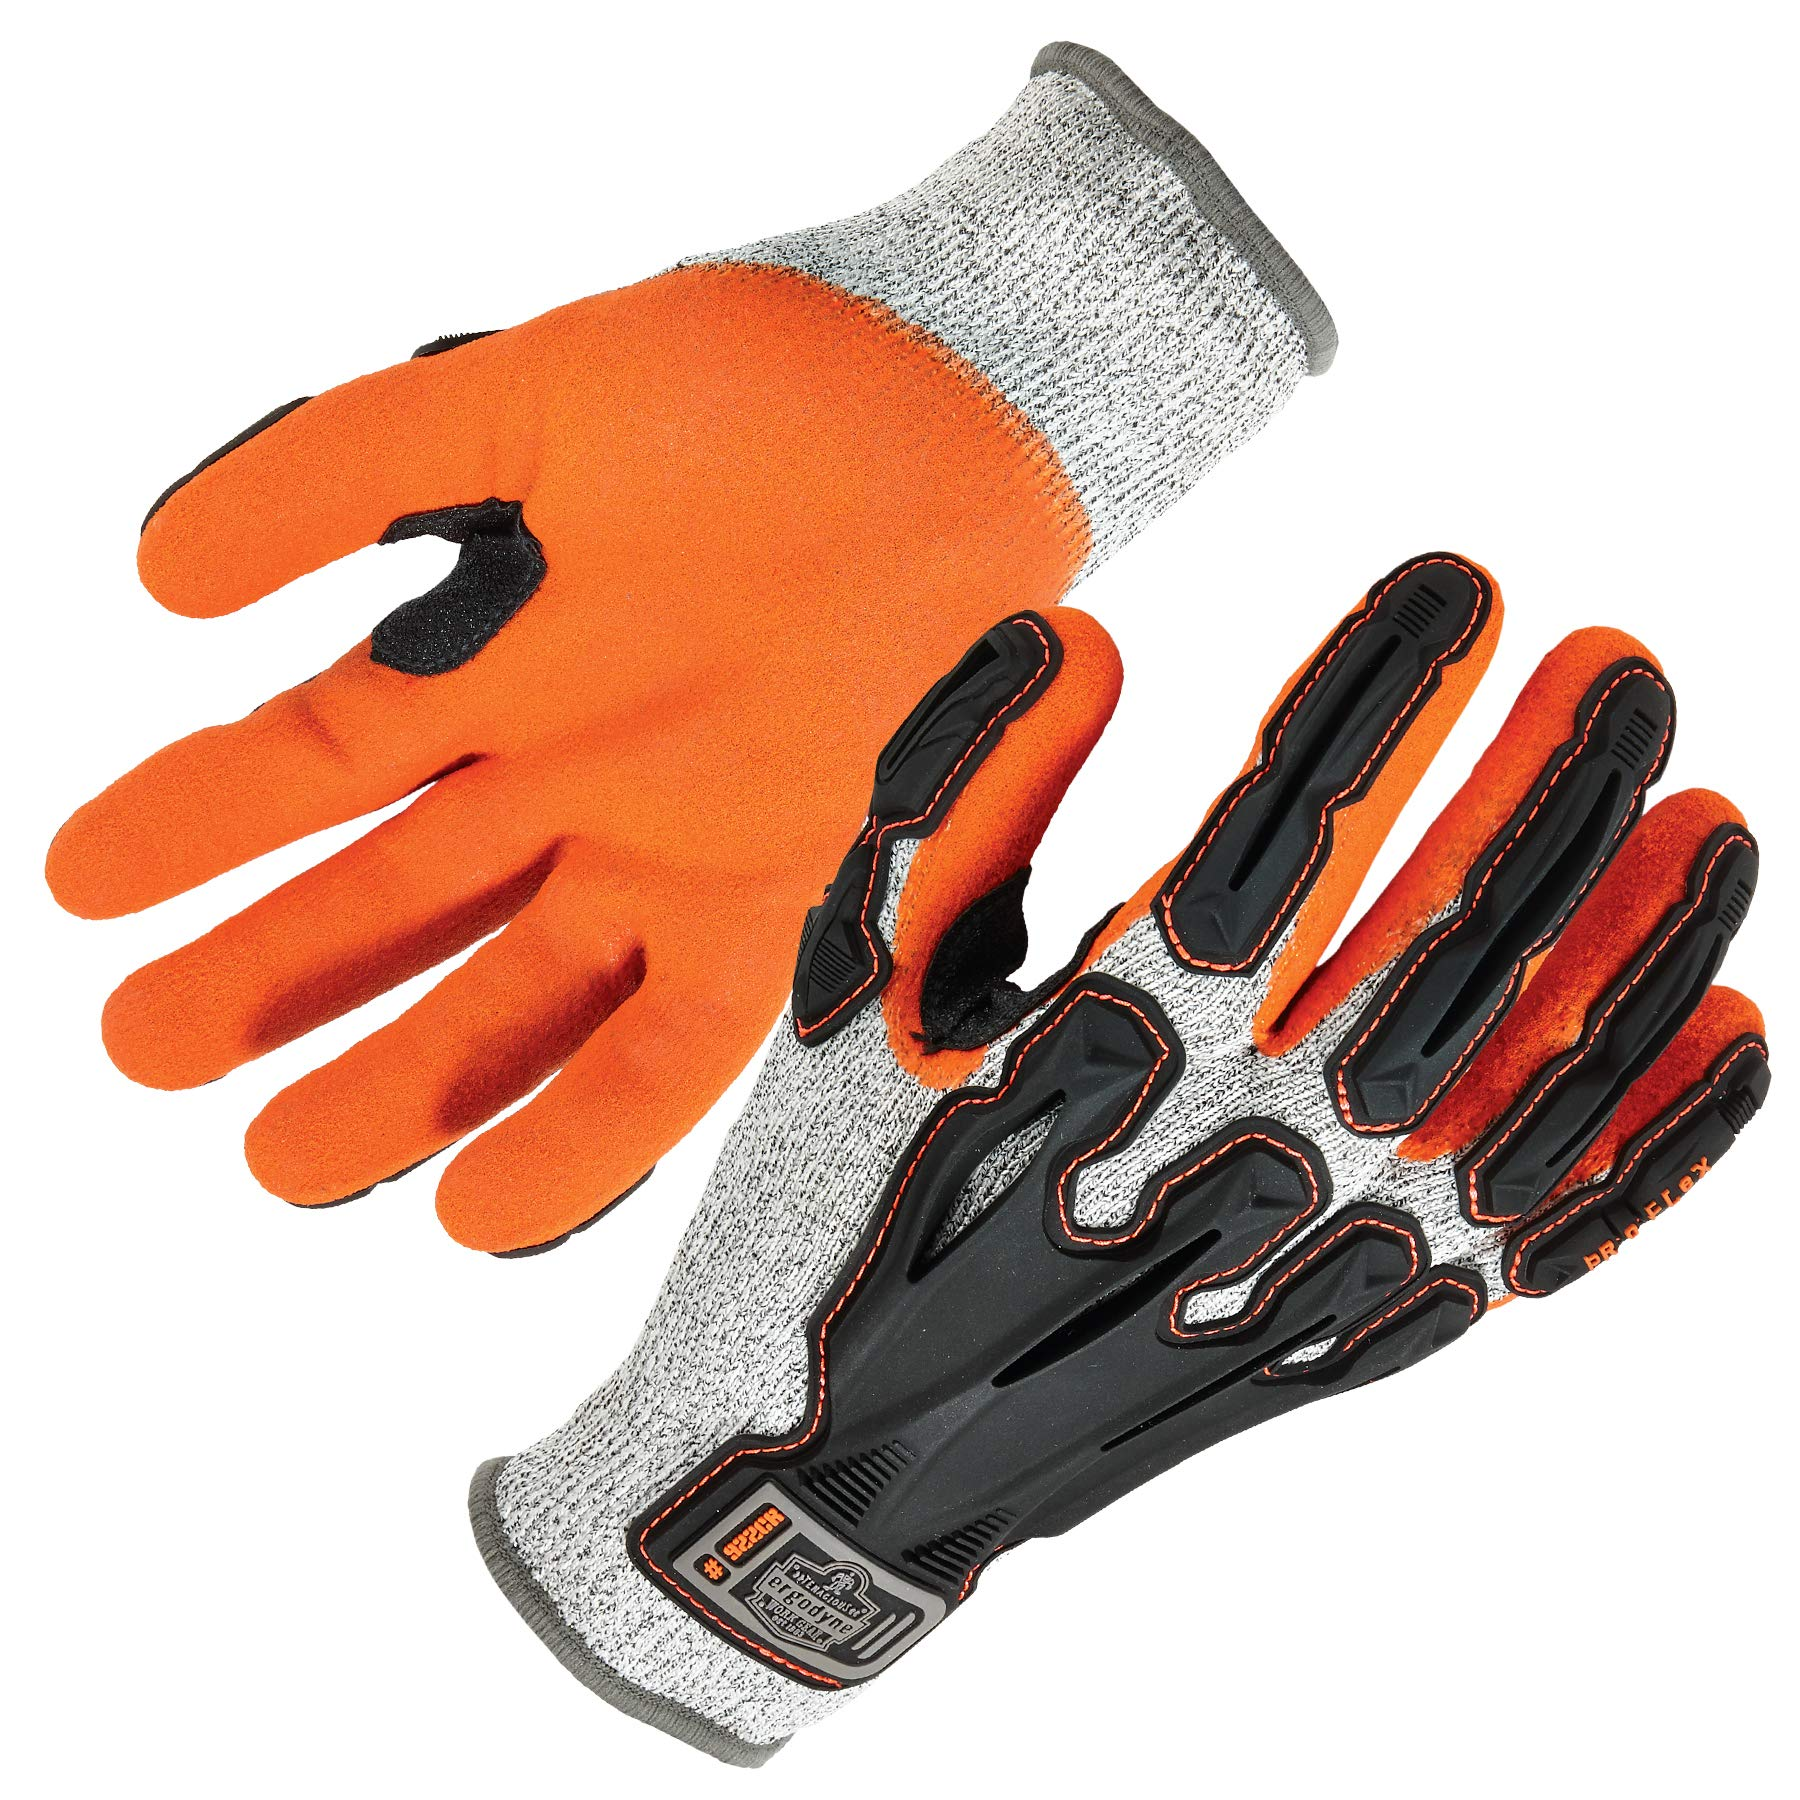 Nitrile Dipped Work Gloves, Cut Resistant, Cut Level A3, Back Hand Impact Protection, Ergodyne ProFlex 922CR, Small